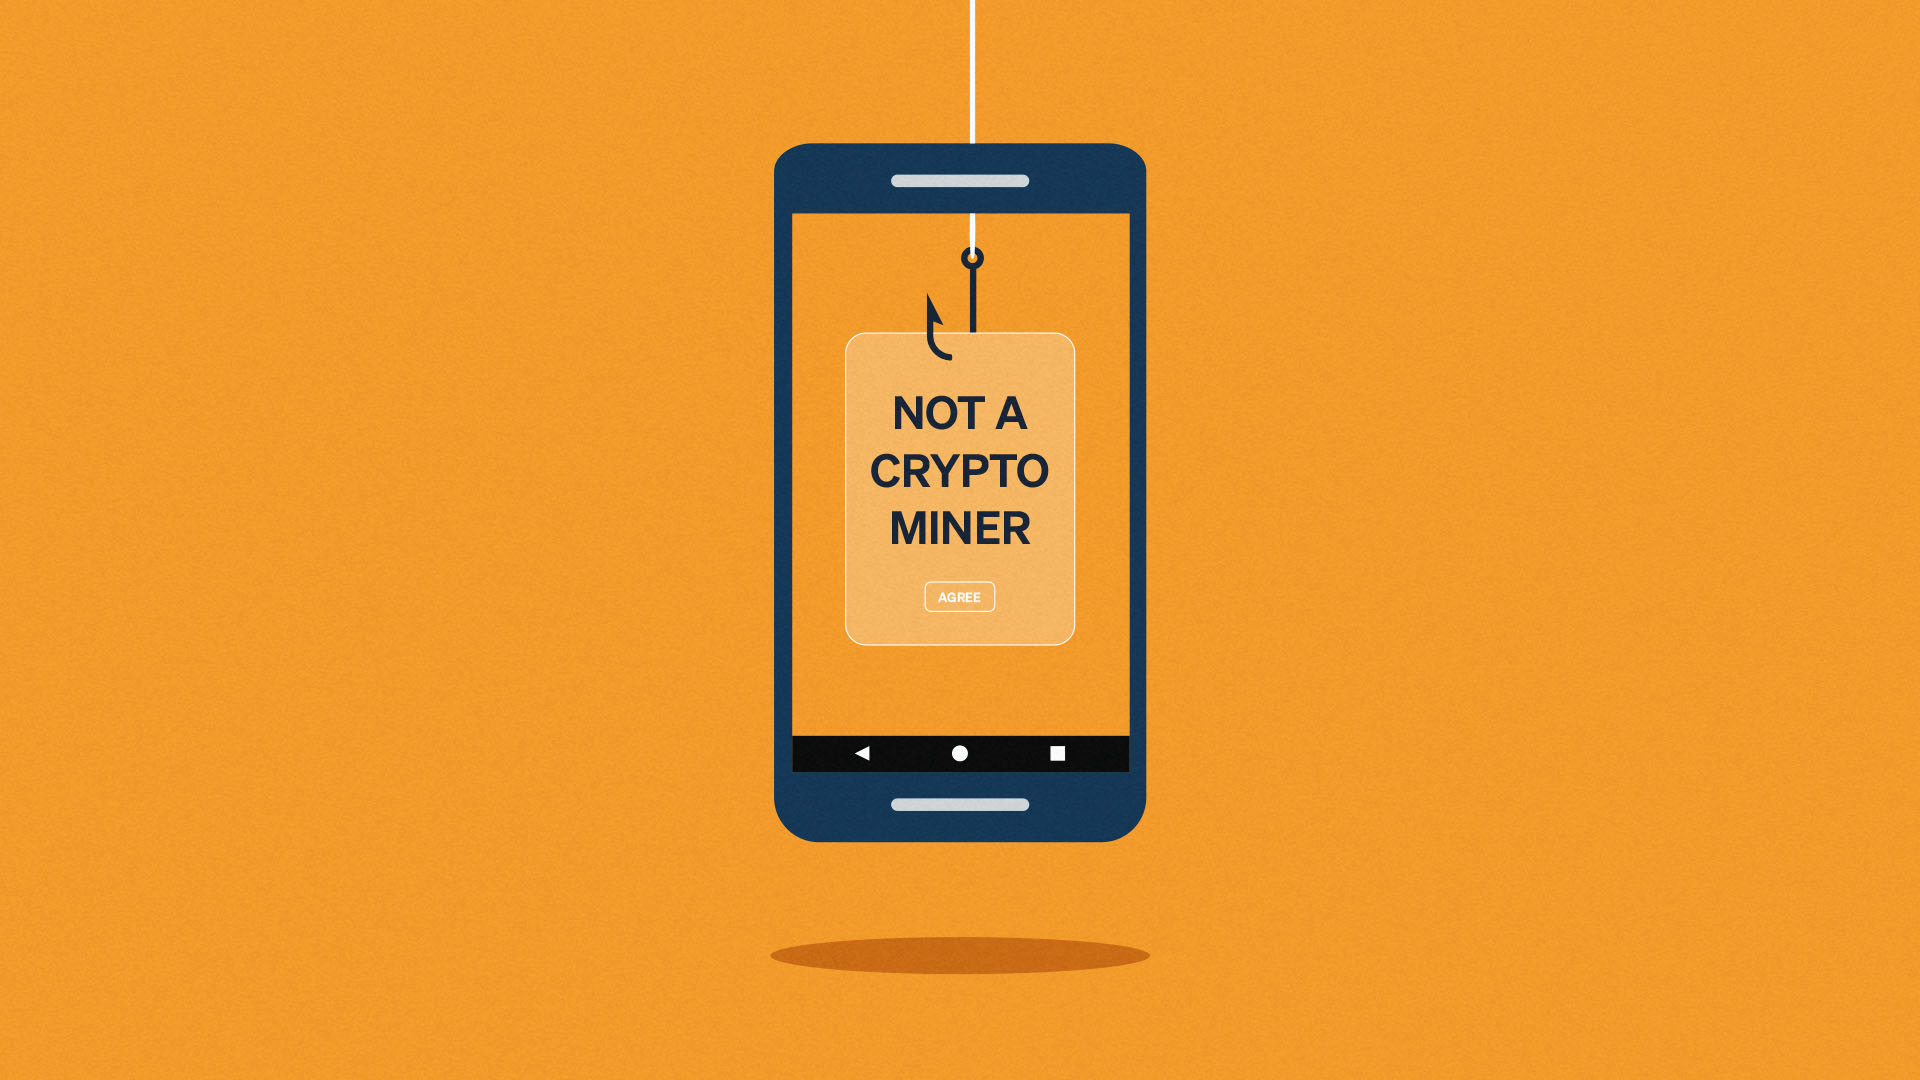 More than 170 Android apps claiming to give would-be crypto miners the ability to harvest coins in the cloud have turned out to be nothing more than scams, according to a recent investigation by Android security specialists Lookout.